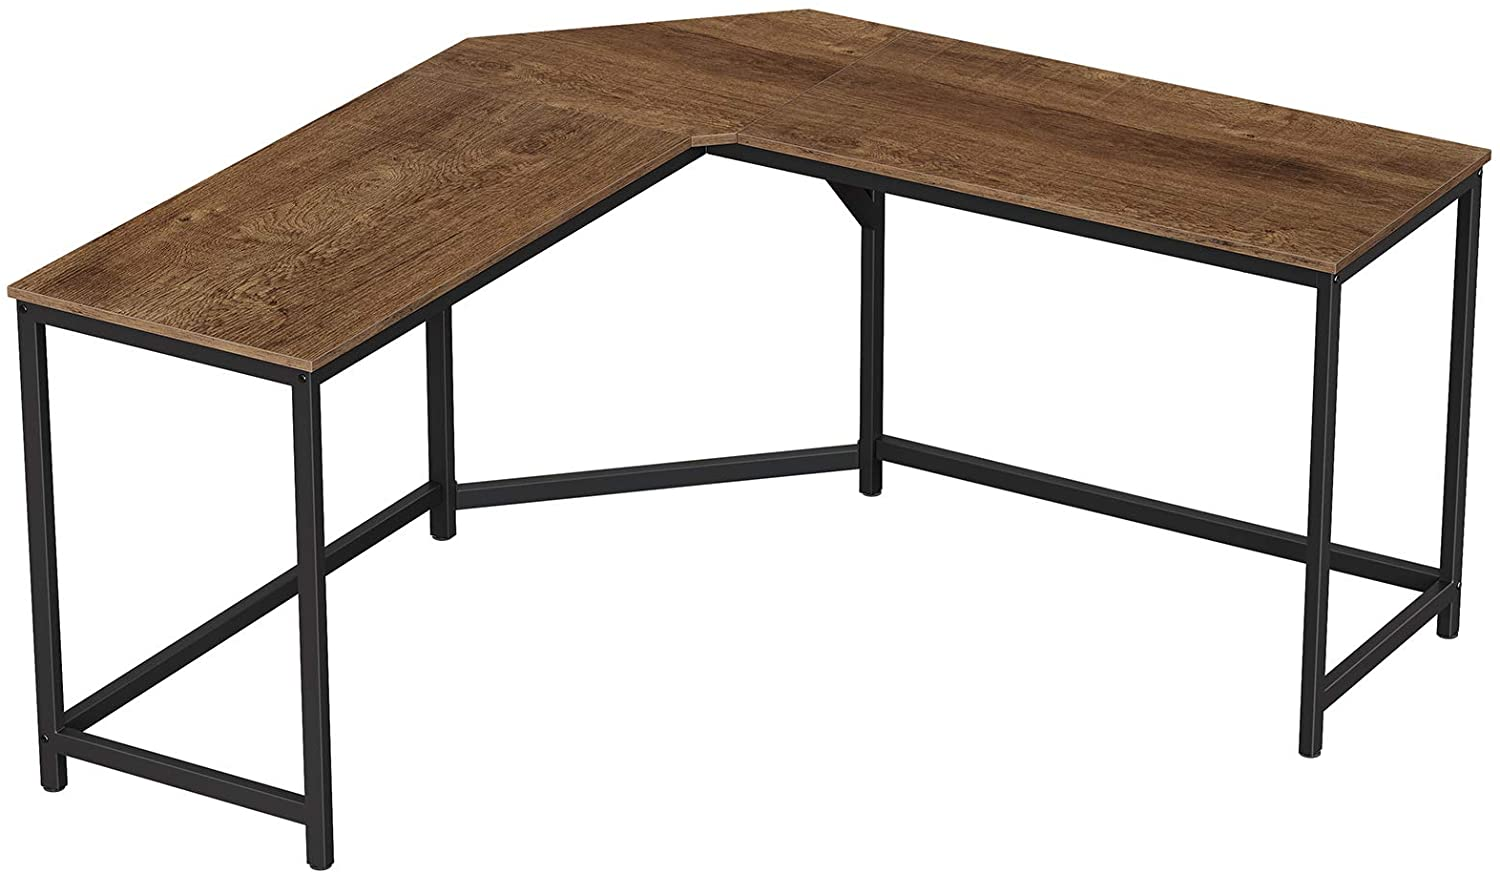 VASAGLE Computer Desk, L-Shaped Corner Desk for Home Office, Study Writing Workstation, Industrial Style PC Laptop Table, Gaming Desk, Space-Saving, Easy Assembly, Walnut Brown and Black ULWD073B08